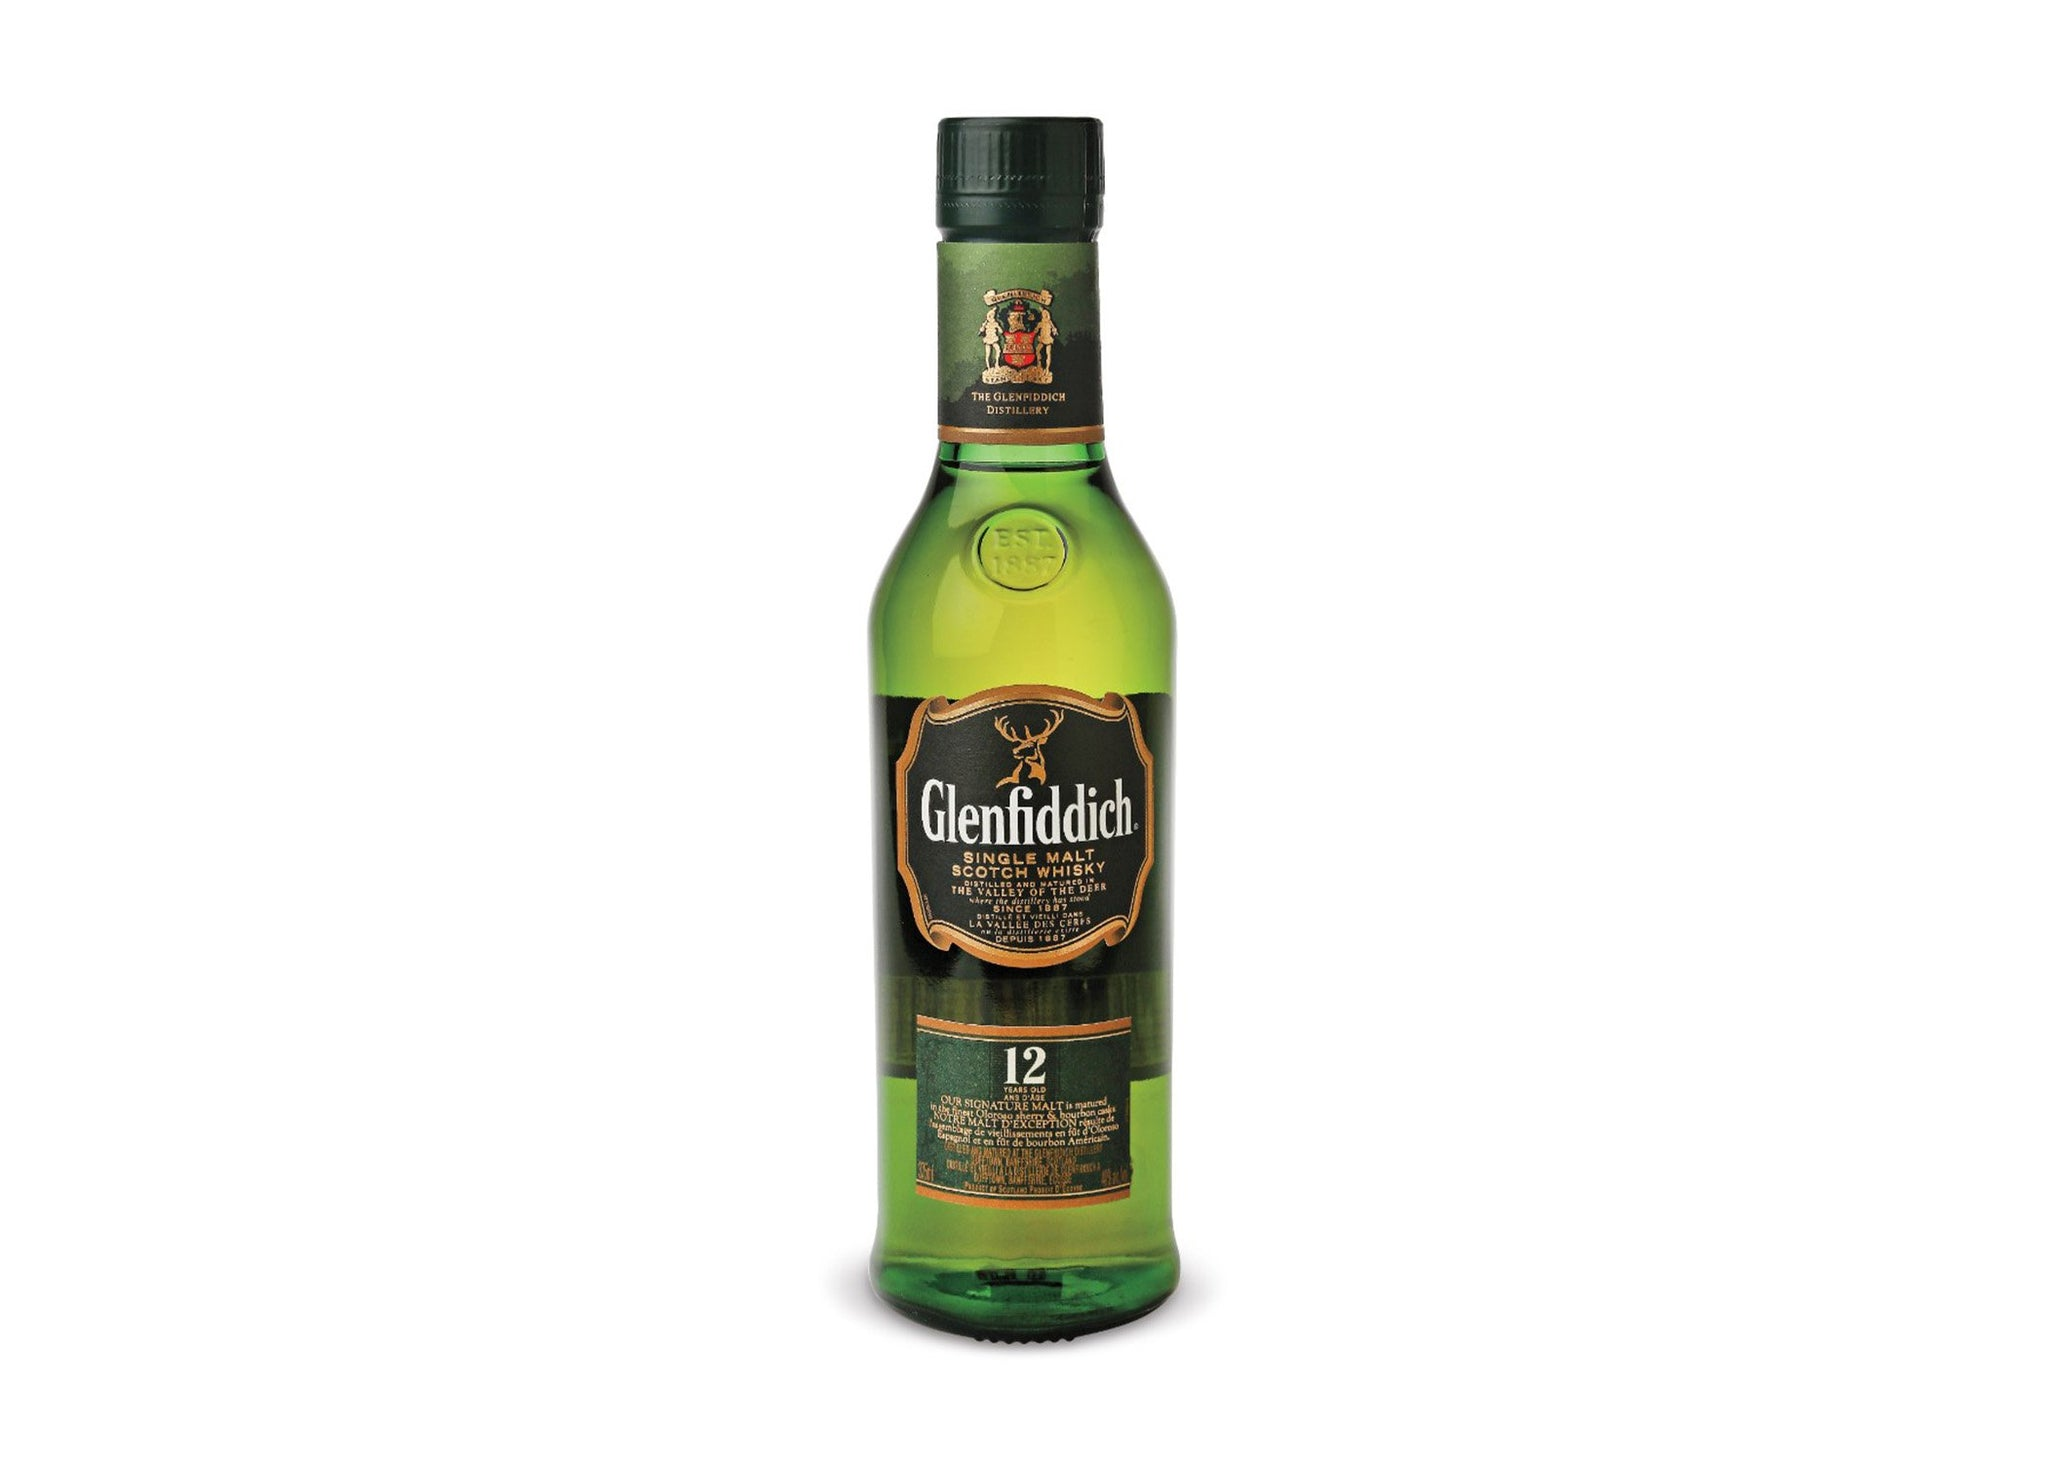 stl>Glenfiddich Single Malt Scotch Whisky 750 ml